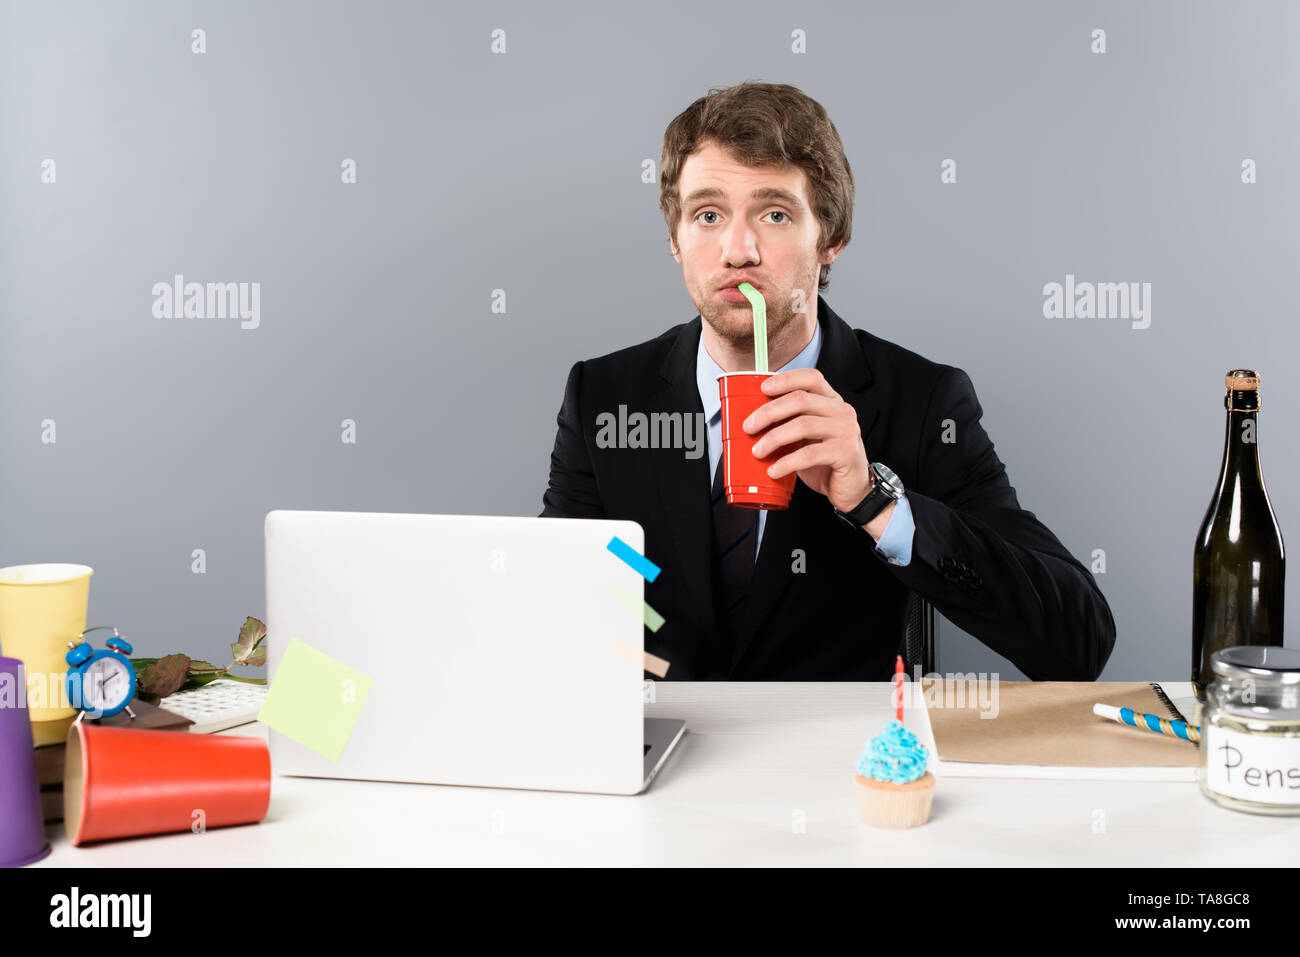 businessman sitting at workplace with cupcake and drinking from paper cup isolated on grey - Stock Image